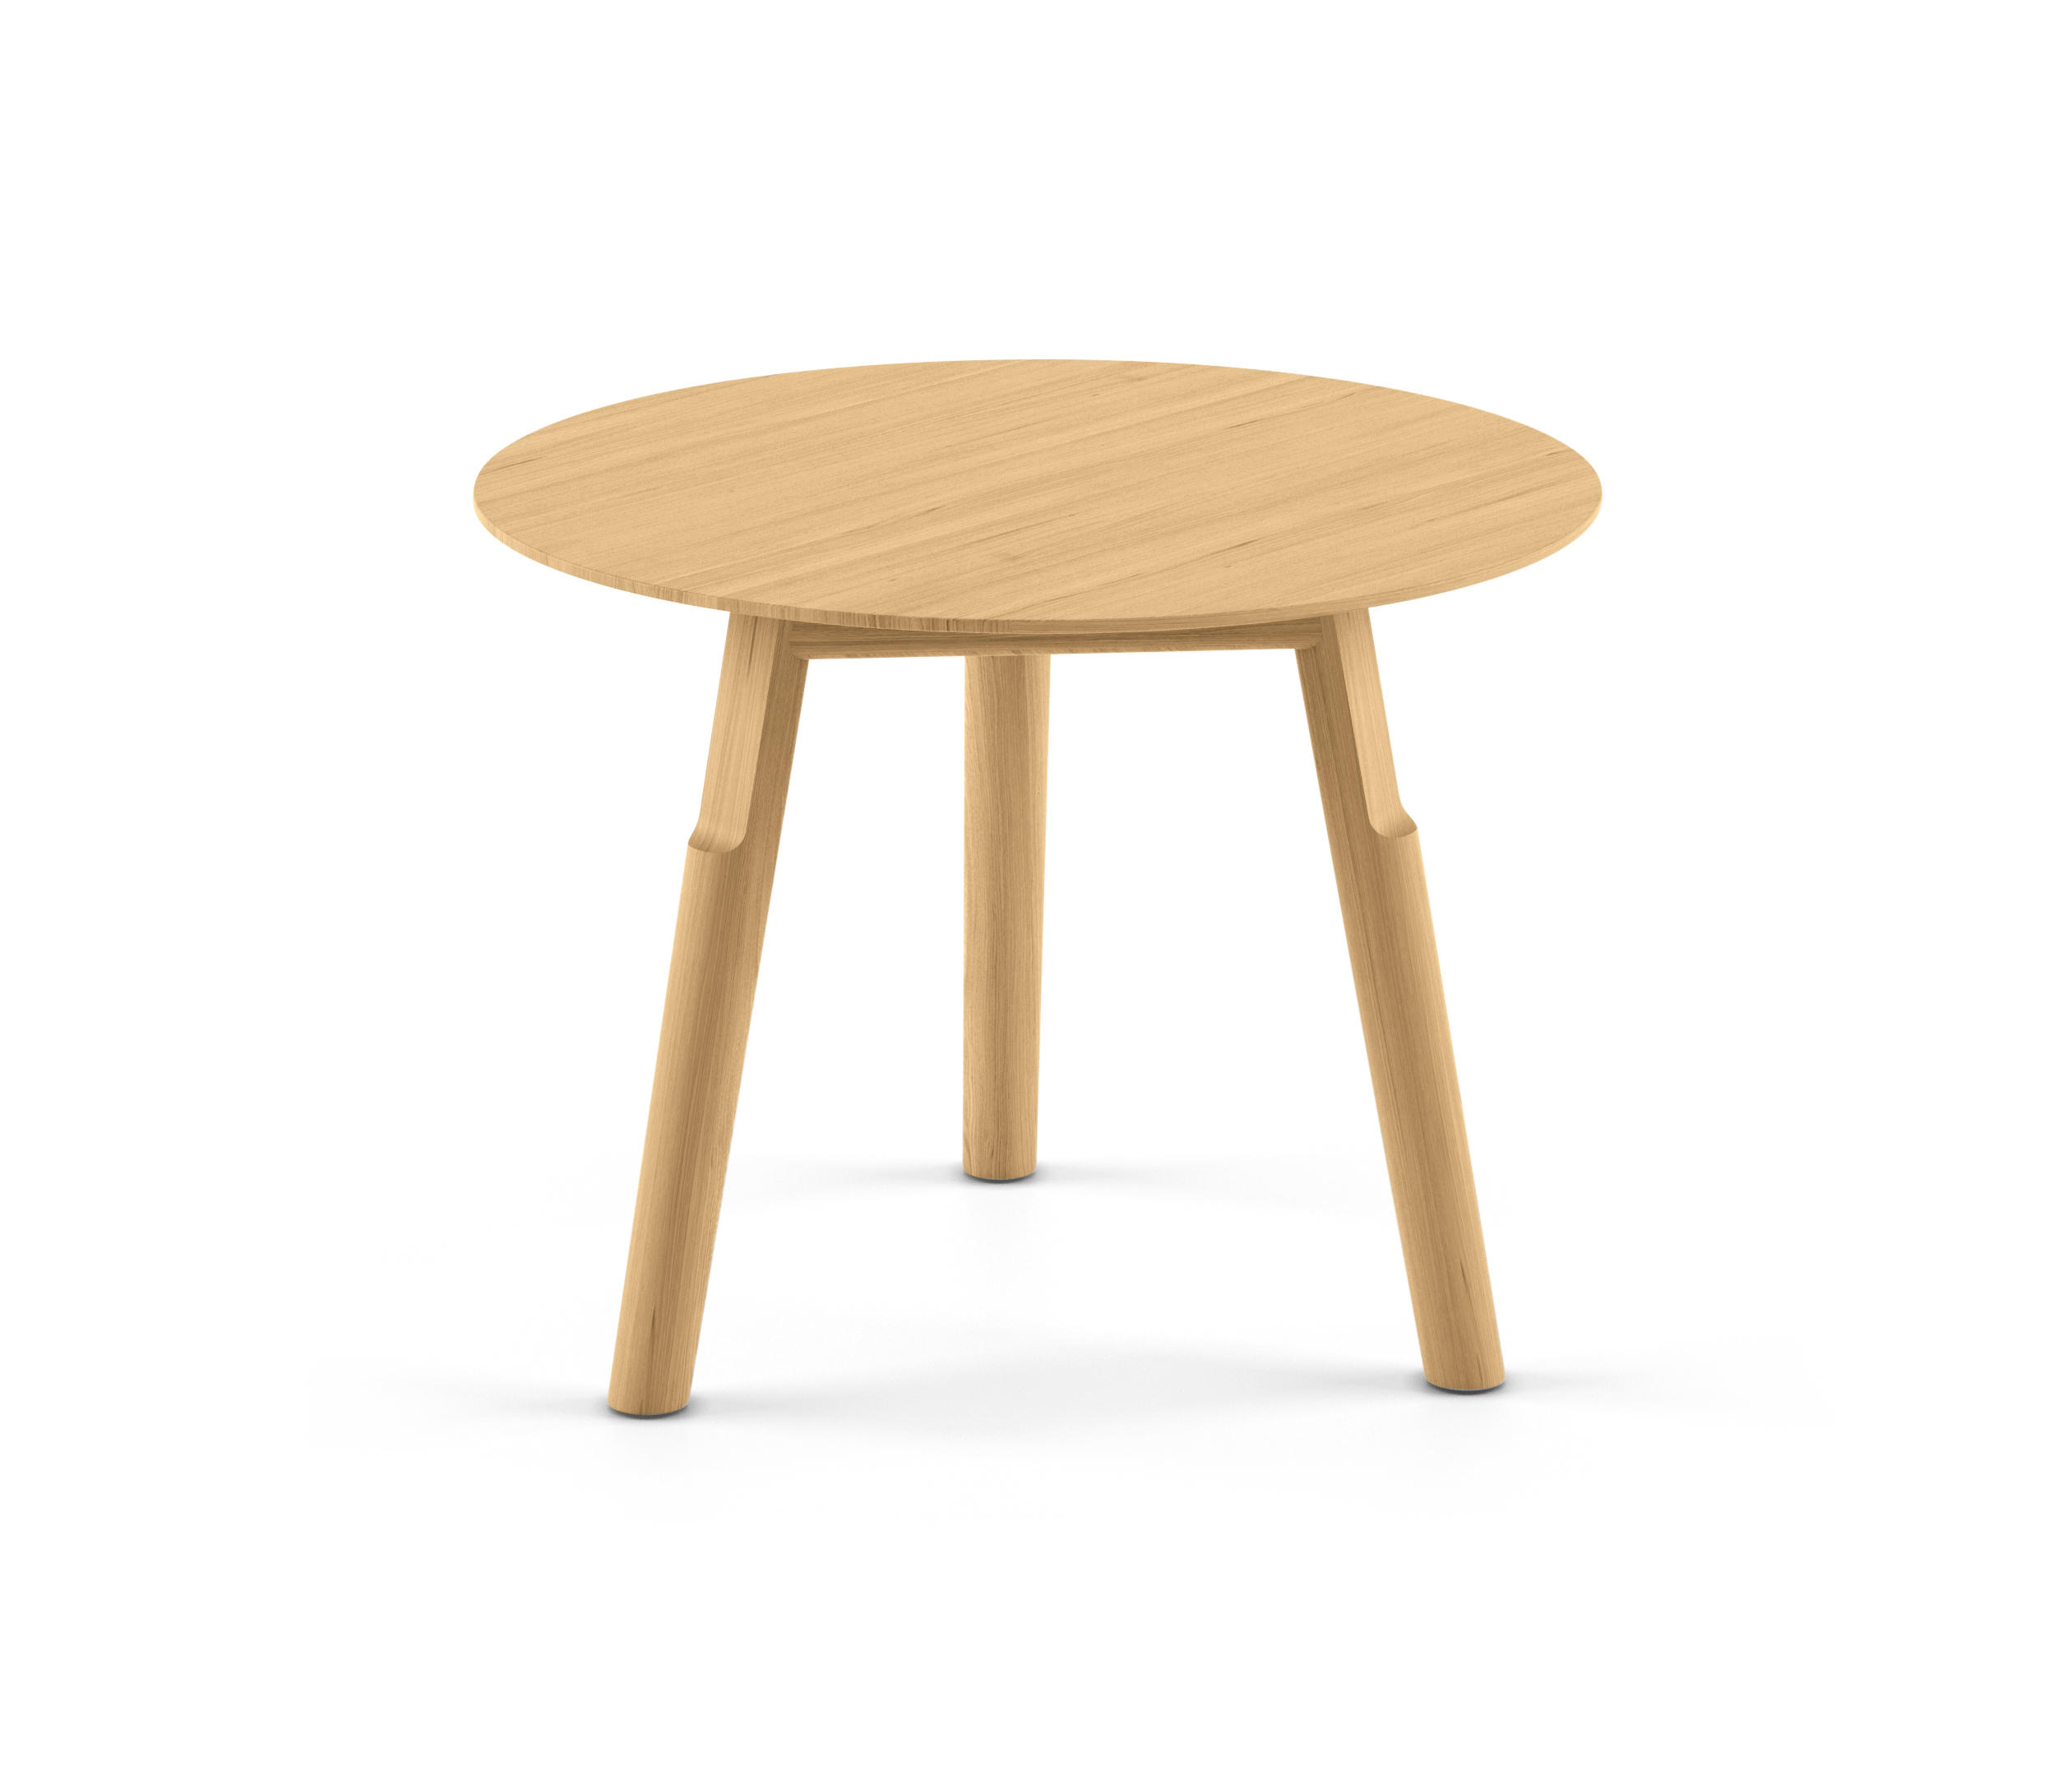 #A26D29 KAYAK SMALL TABLE 04C Side Tables From Alias Architonic with 2520x2154 px of Best Small Desk Tables 21542520 image @ avoidforclosure.info